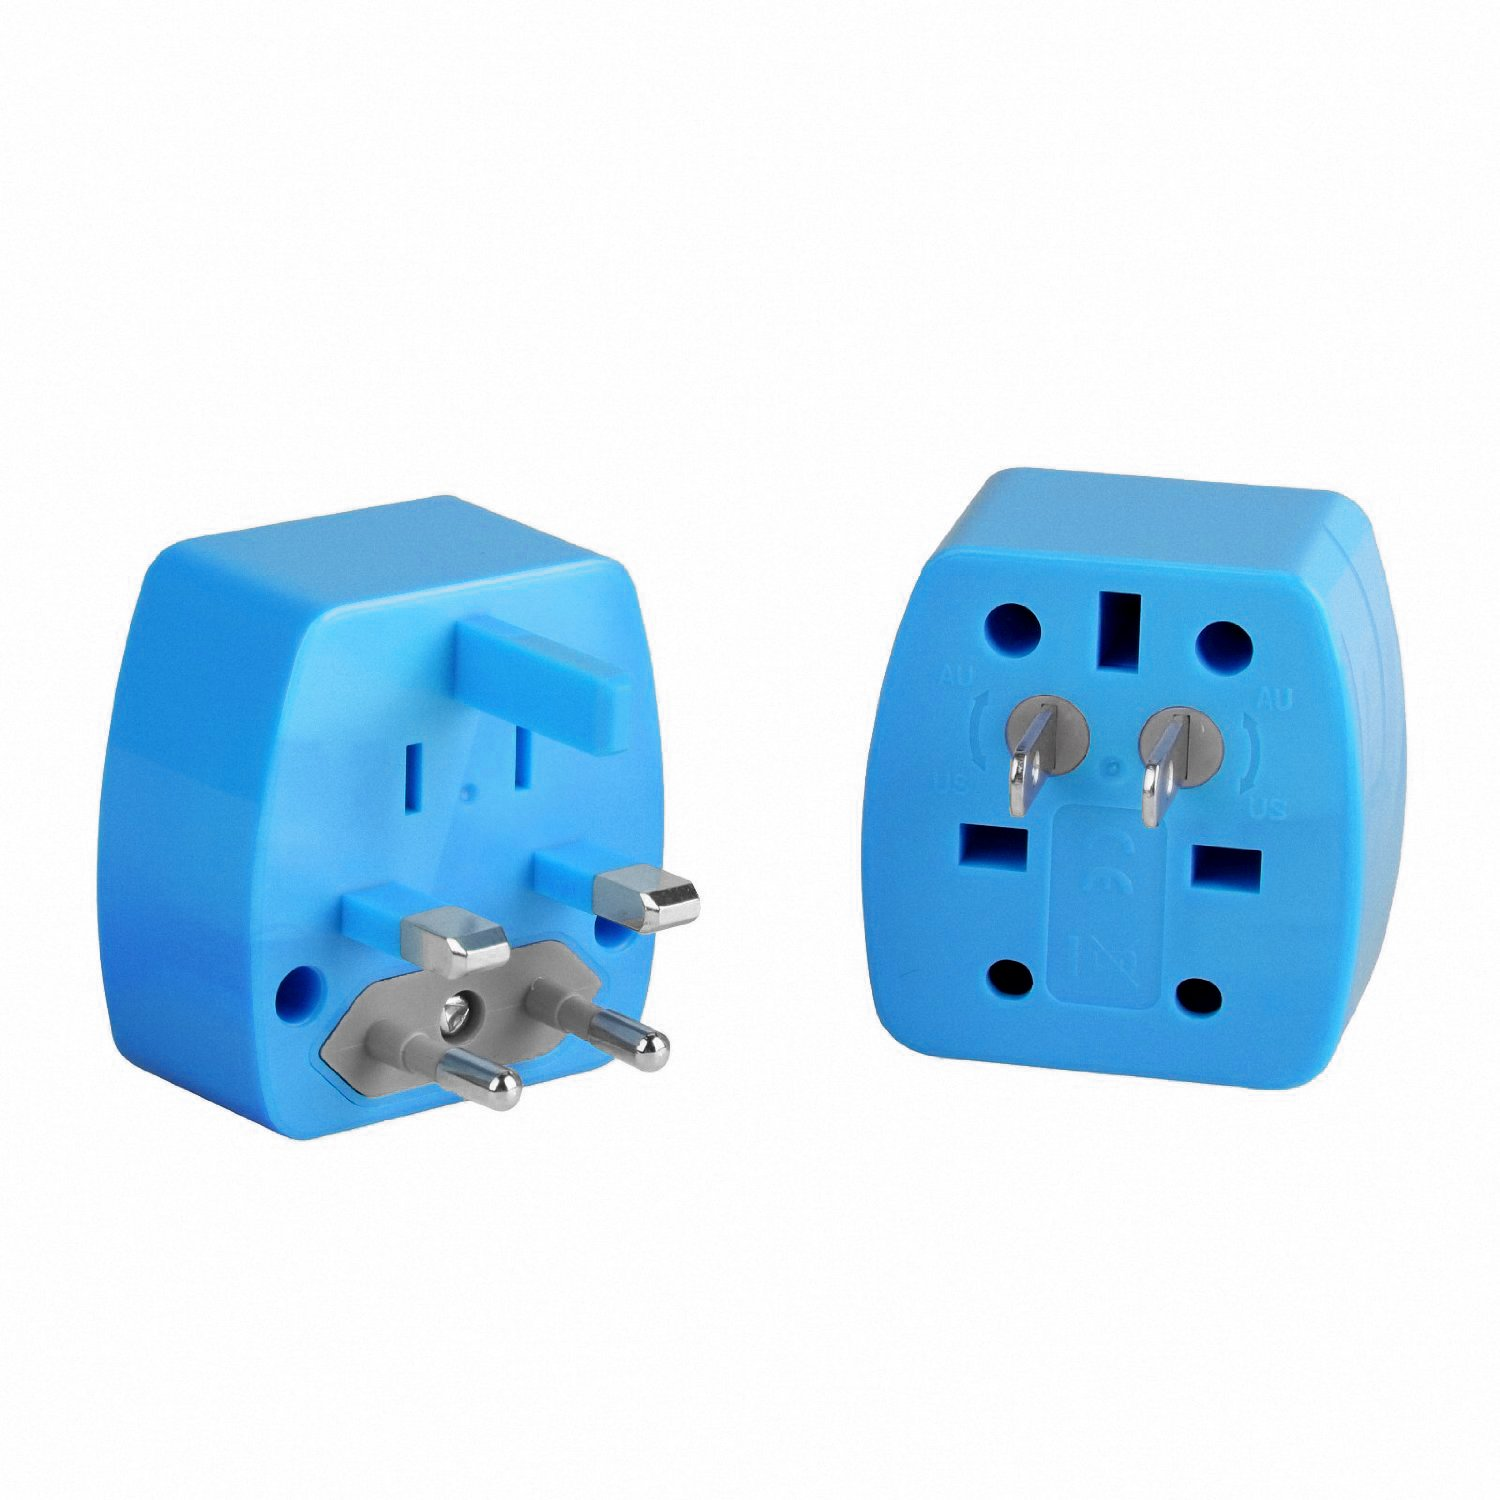 VLG Travel Power International Plug Adapter Universal Worldwide Kit Sturdy Snow White Sleek and Easy-to-use VLG Products Compact